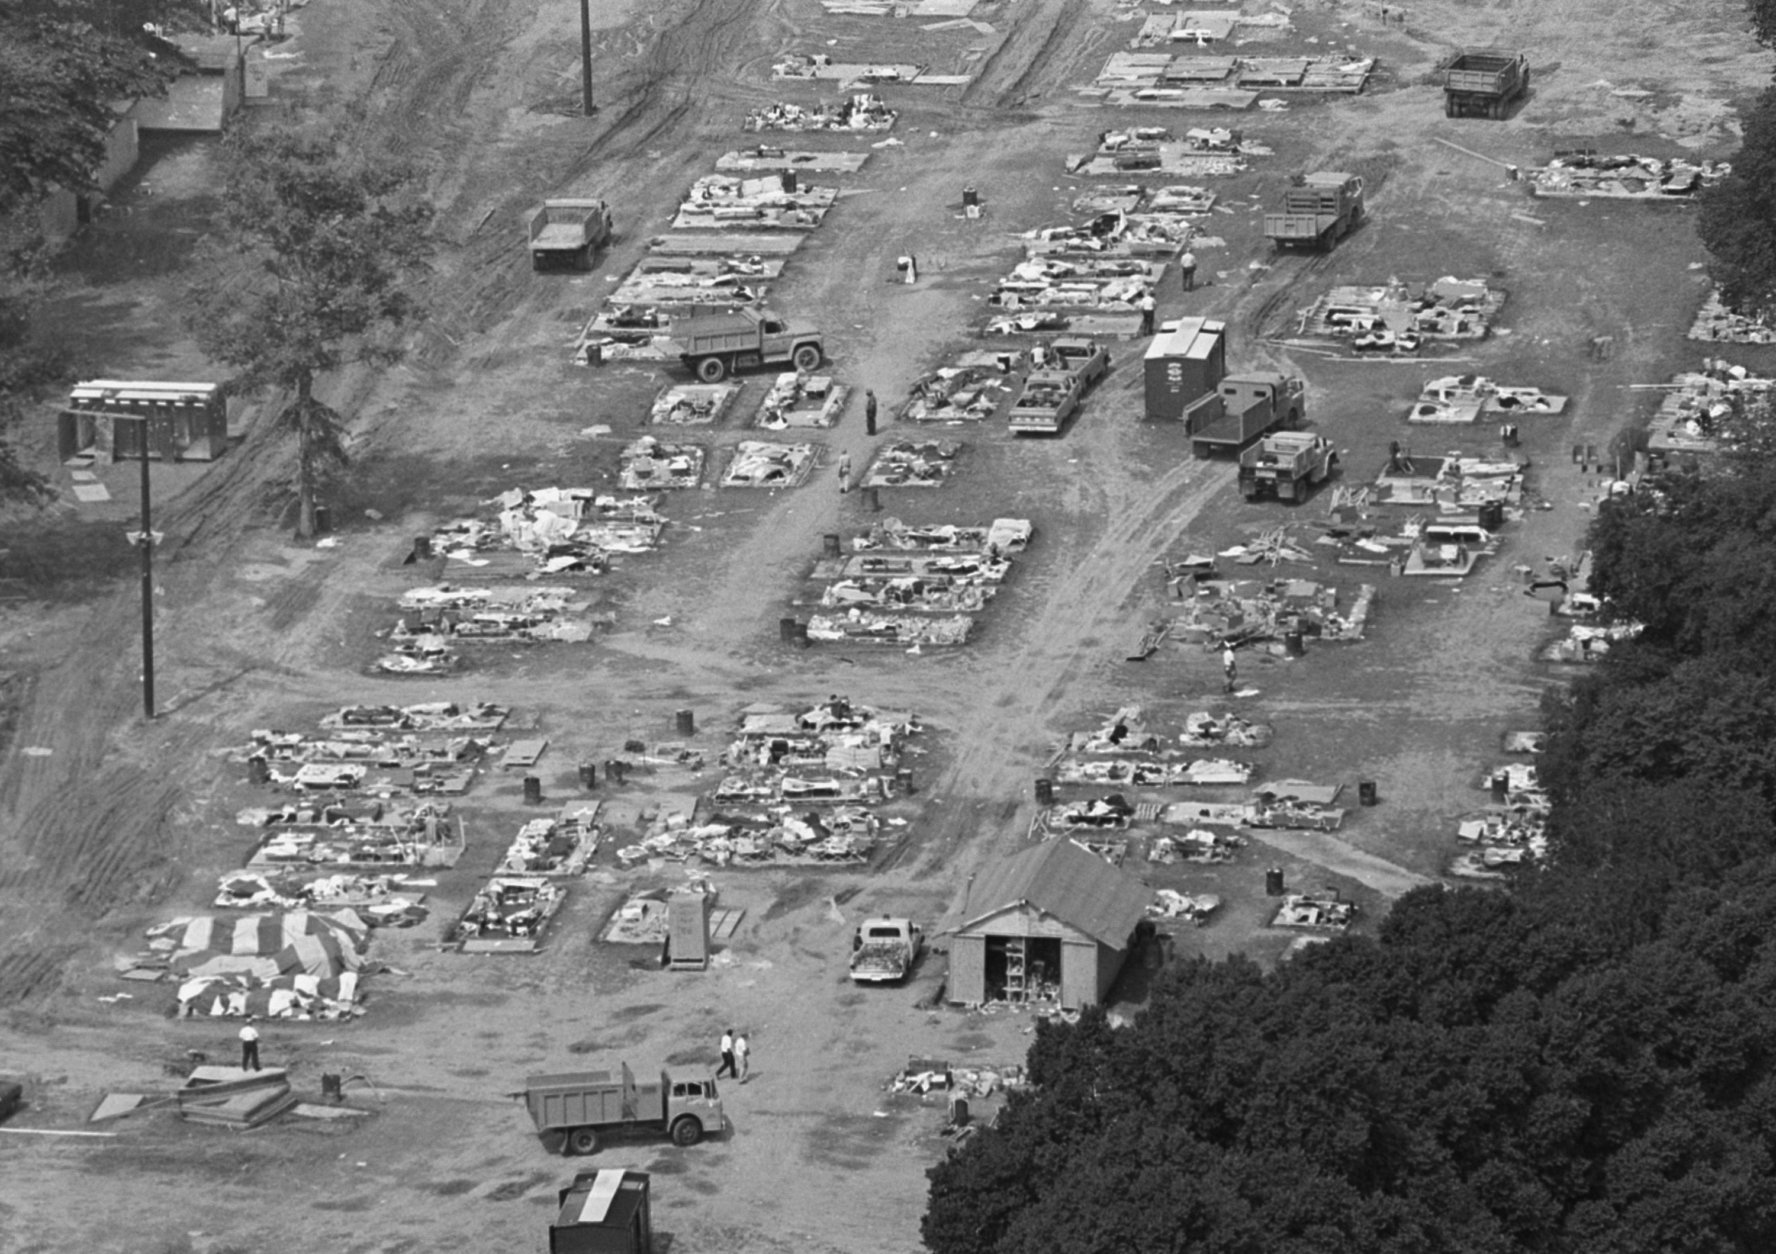 Resurrection City, the campsite of the Poor People's Campaign, is being rapidly dismantled on June 25, 1968 and removed from public land it occupies in Washington, D.C.   This is a view of the scene from the top of the Washington Monument,  June 25, 1968.   Only the floors of its many plywood shanties and some personal belongings of its former occupants remain. (AP Photo/Bob Daughtery